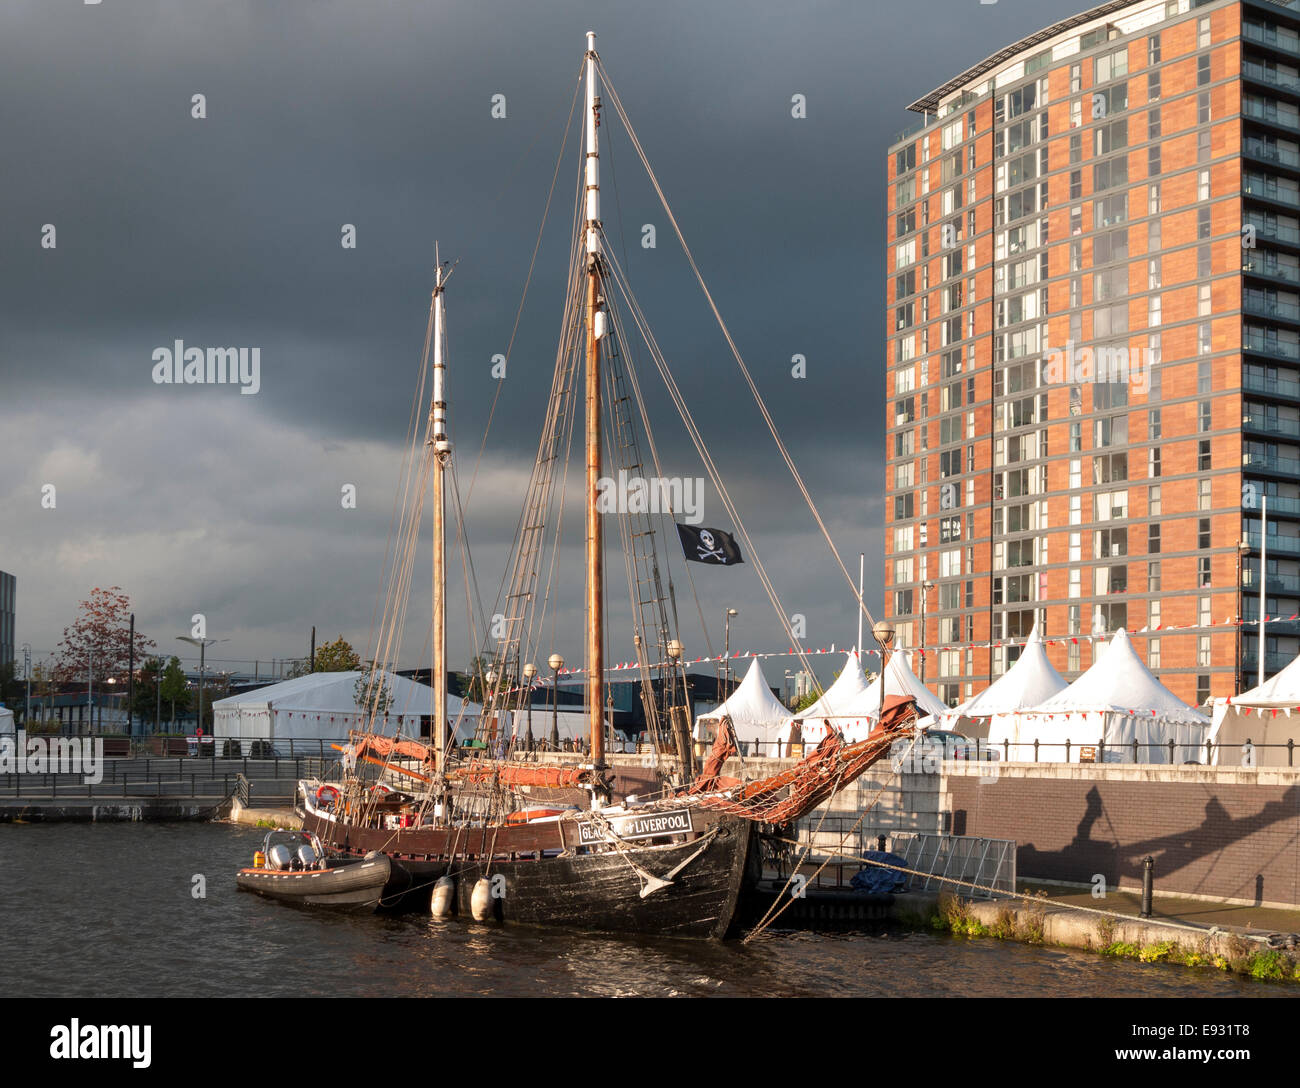 The 'Glacier of Liverpool' sailing ship at Salford Quays, Manchester, England, UK - Stock Image